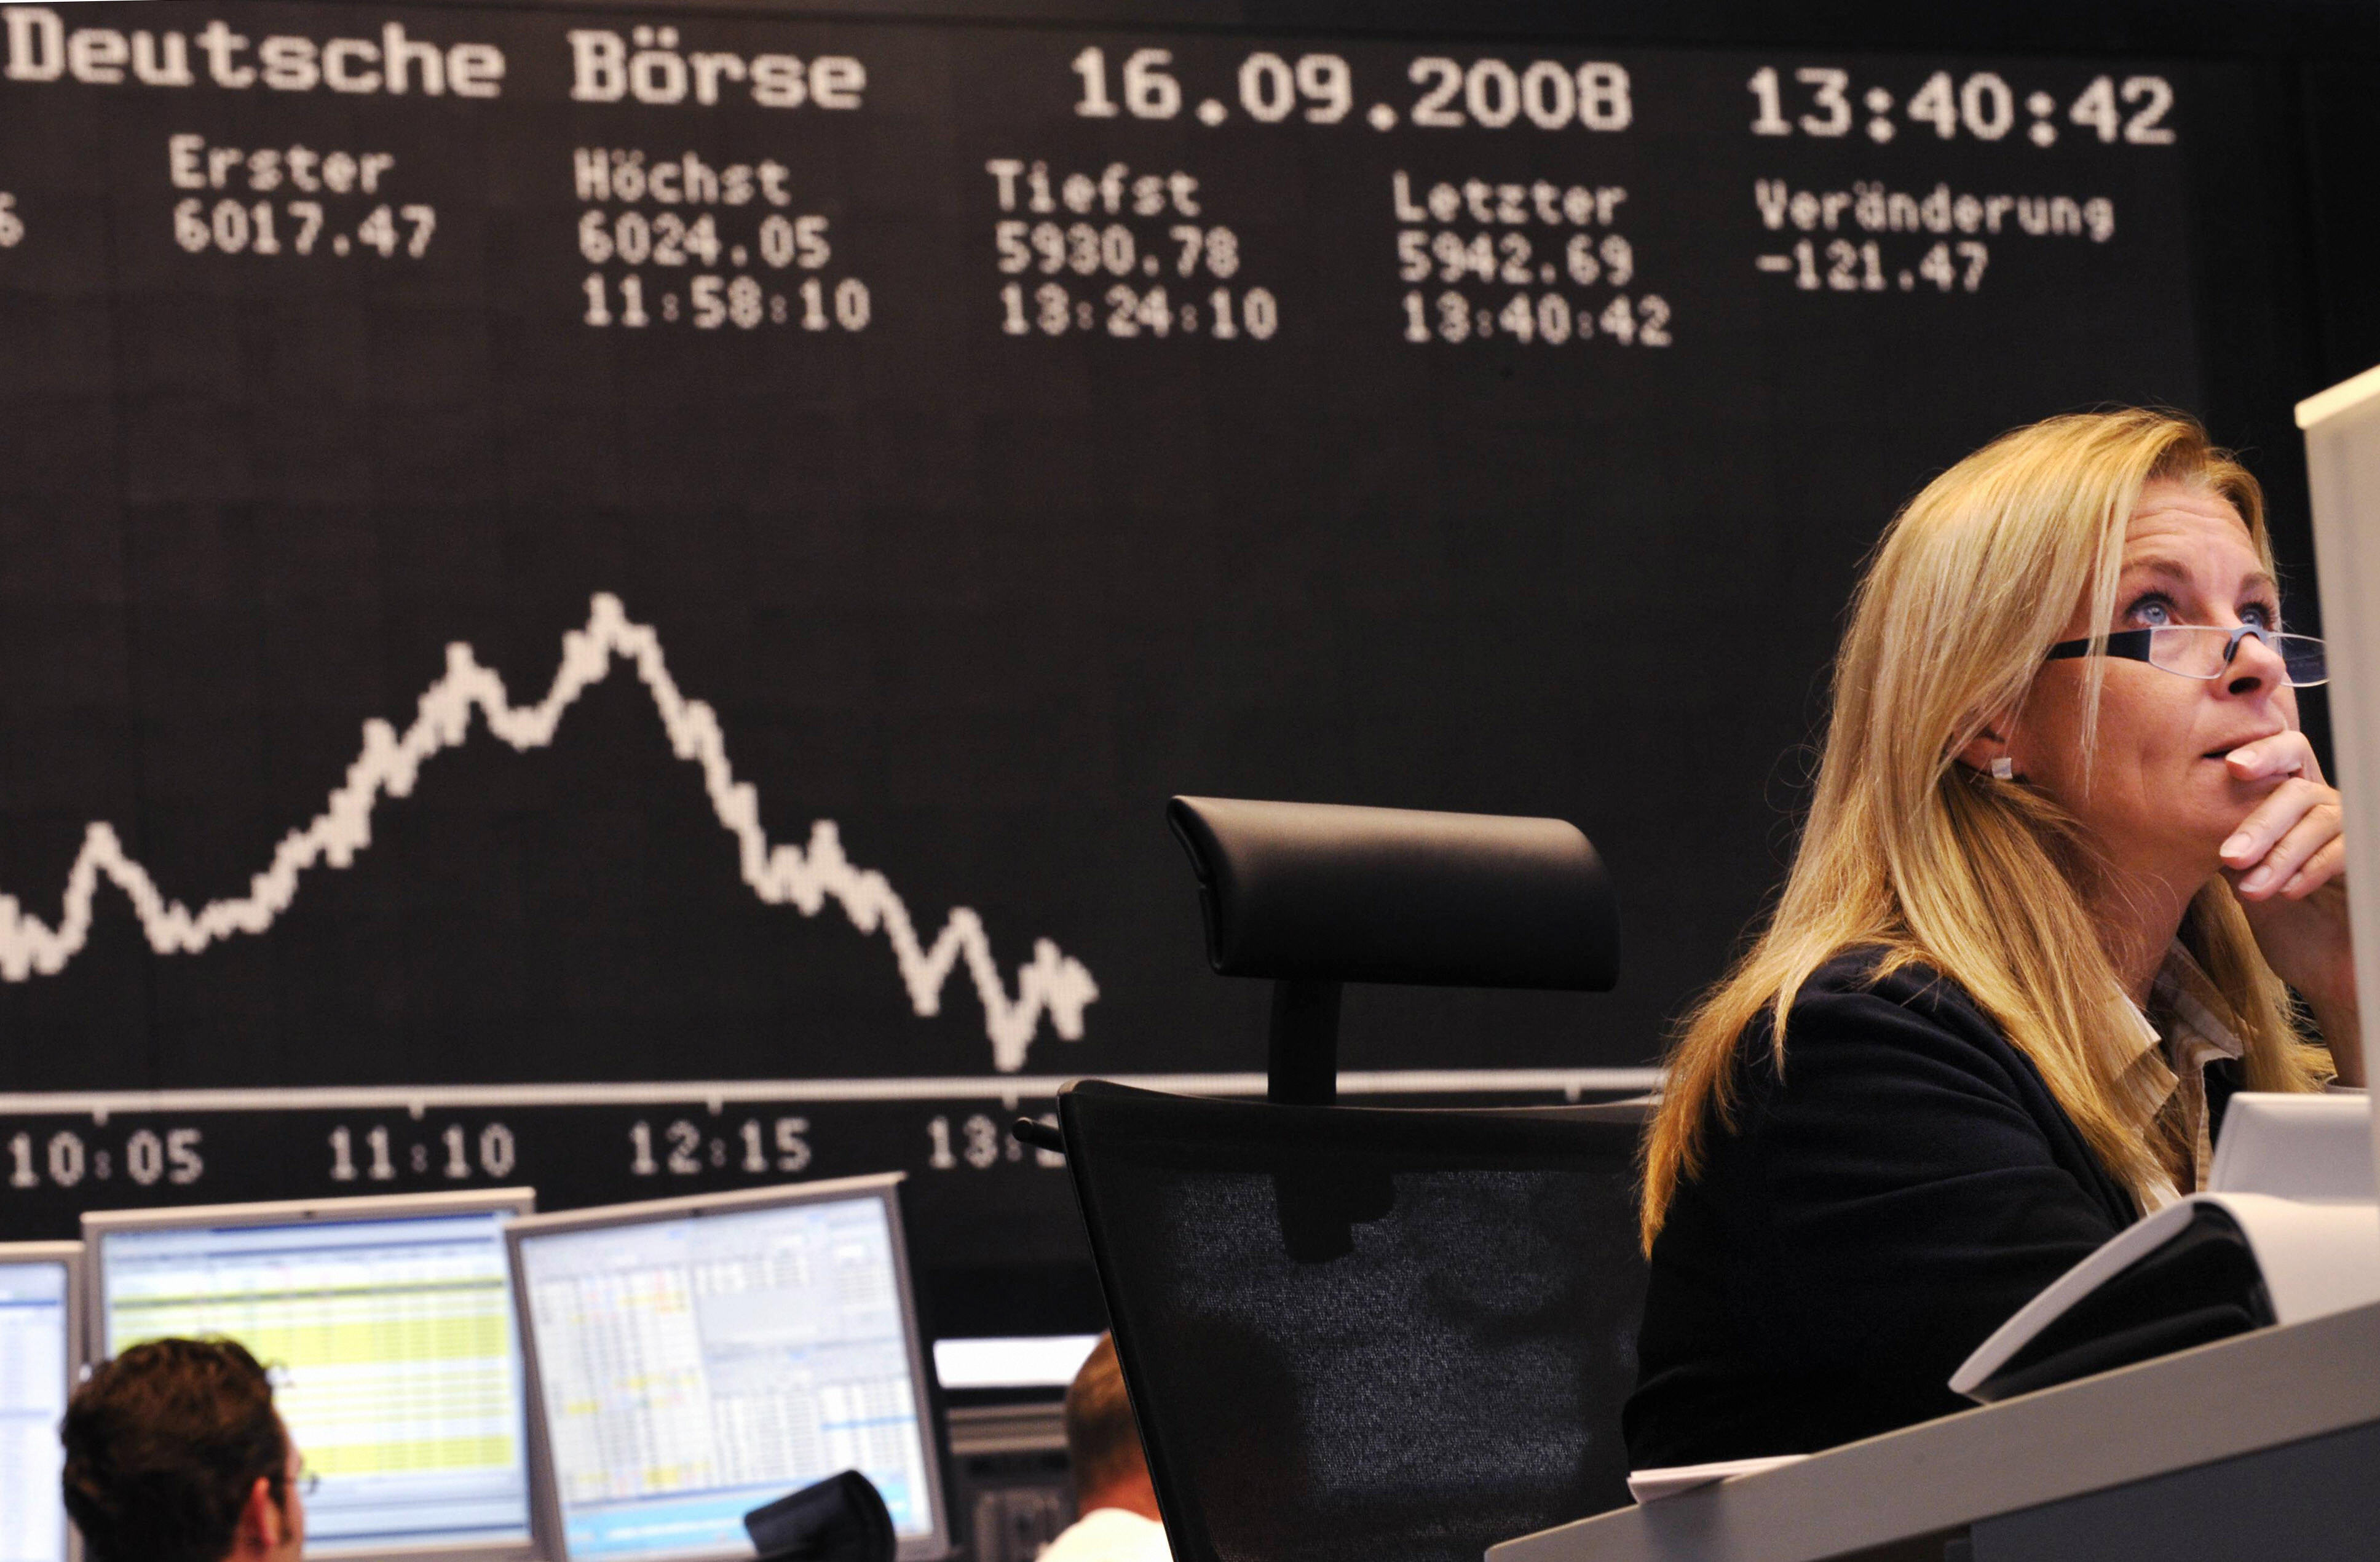 Stock brokers look at their screens at Frankfurt's stock exchange on Sept. 16, 2008, as the blue chip DAX 30 was down over three percent at 1300 GMT, adding to a 2.74 percent fall the day before after U.S. investment bank Lehman Brothers filed for bankruptcy protection. THOMAS LOHNES/AFP/Getty Images